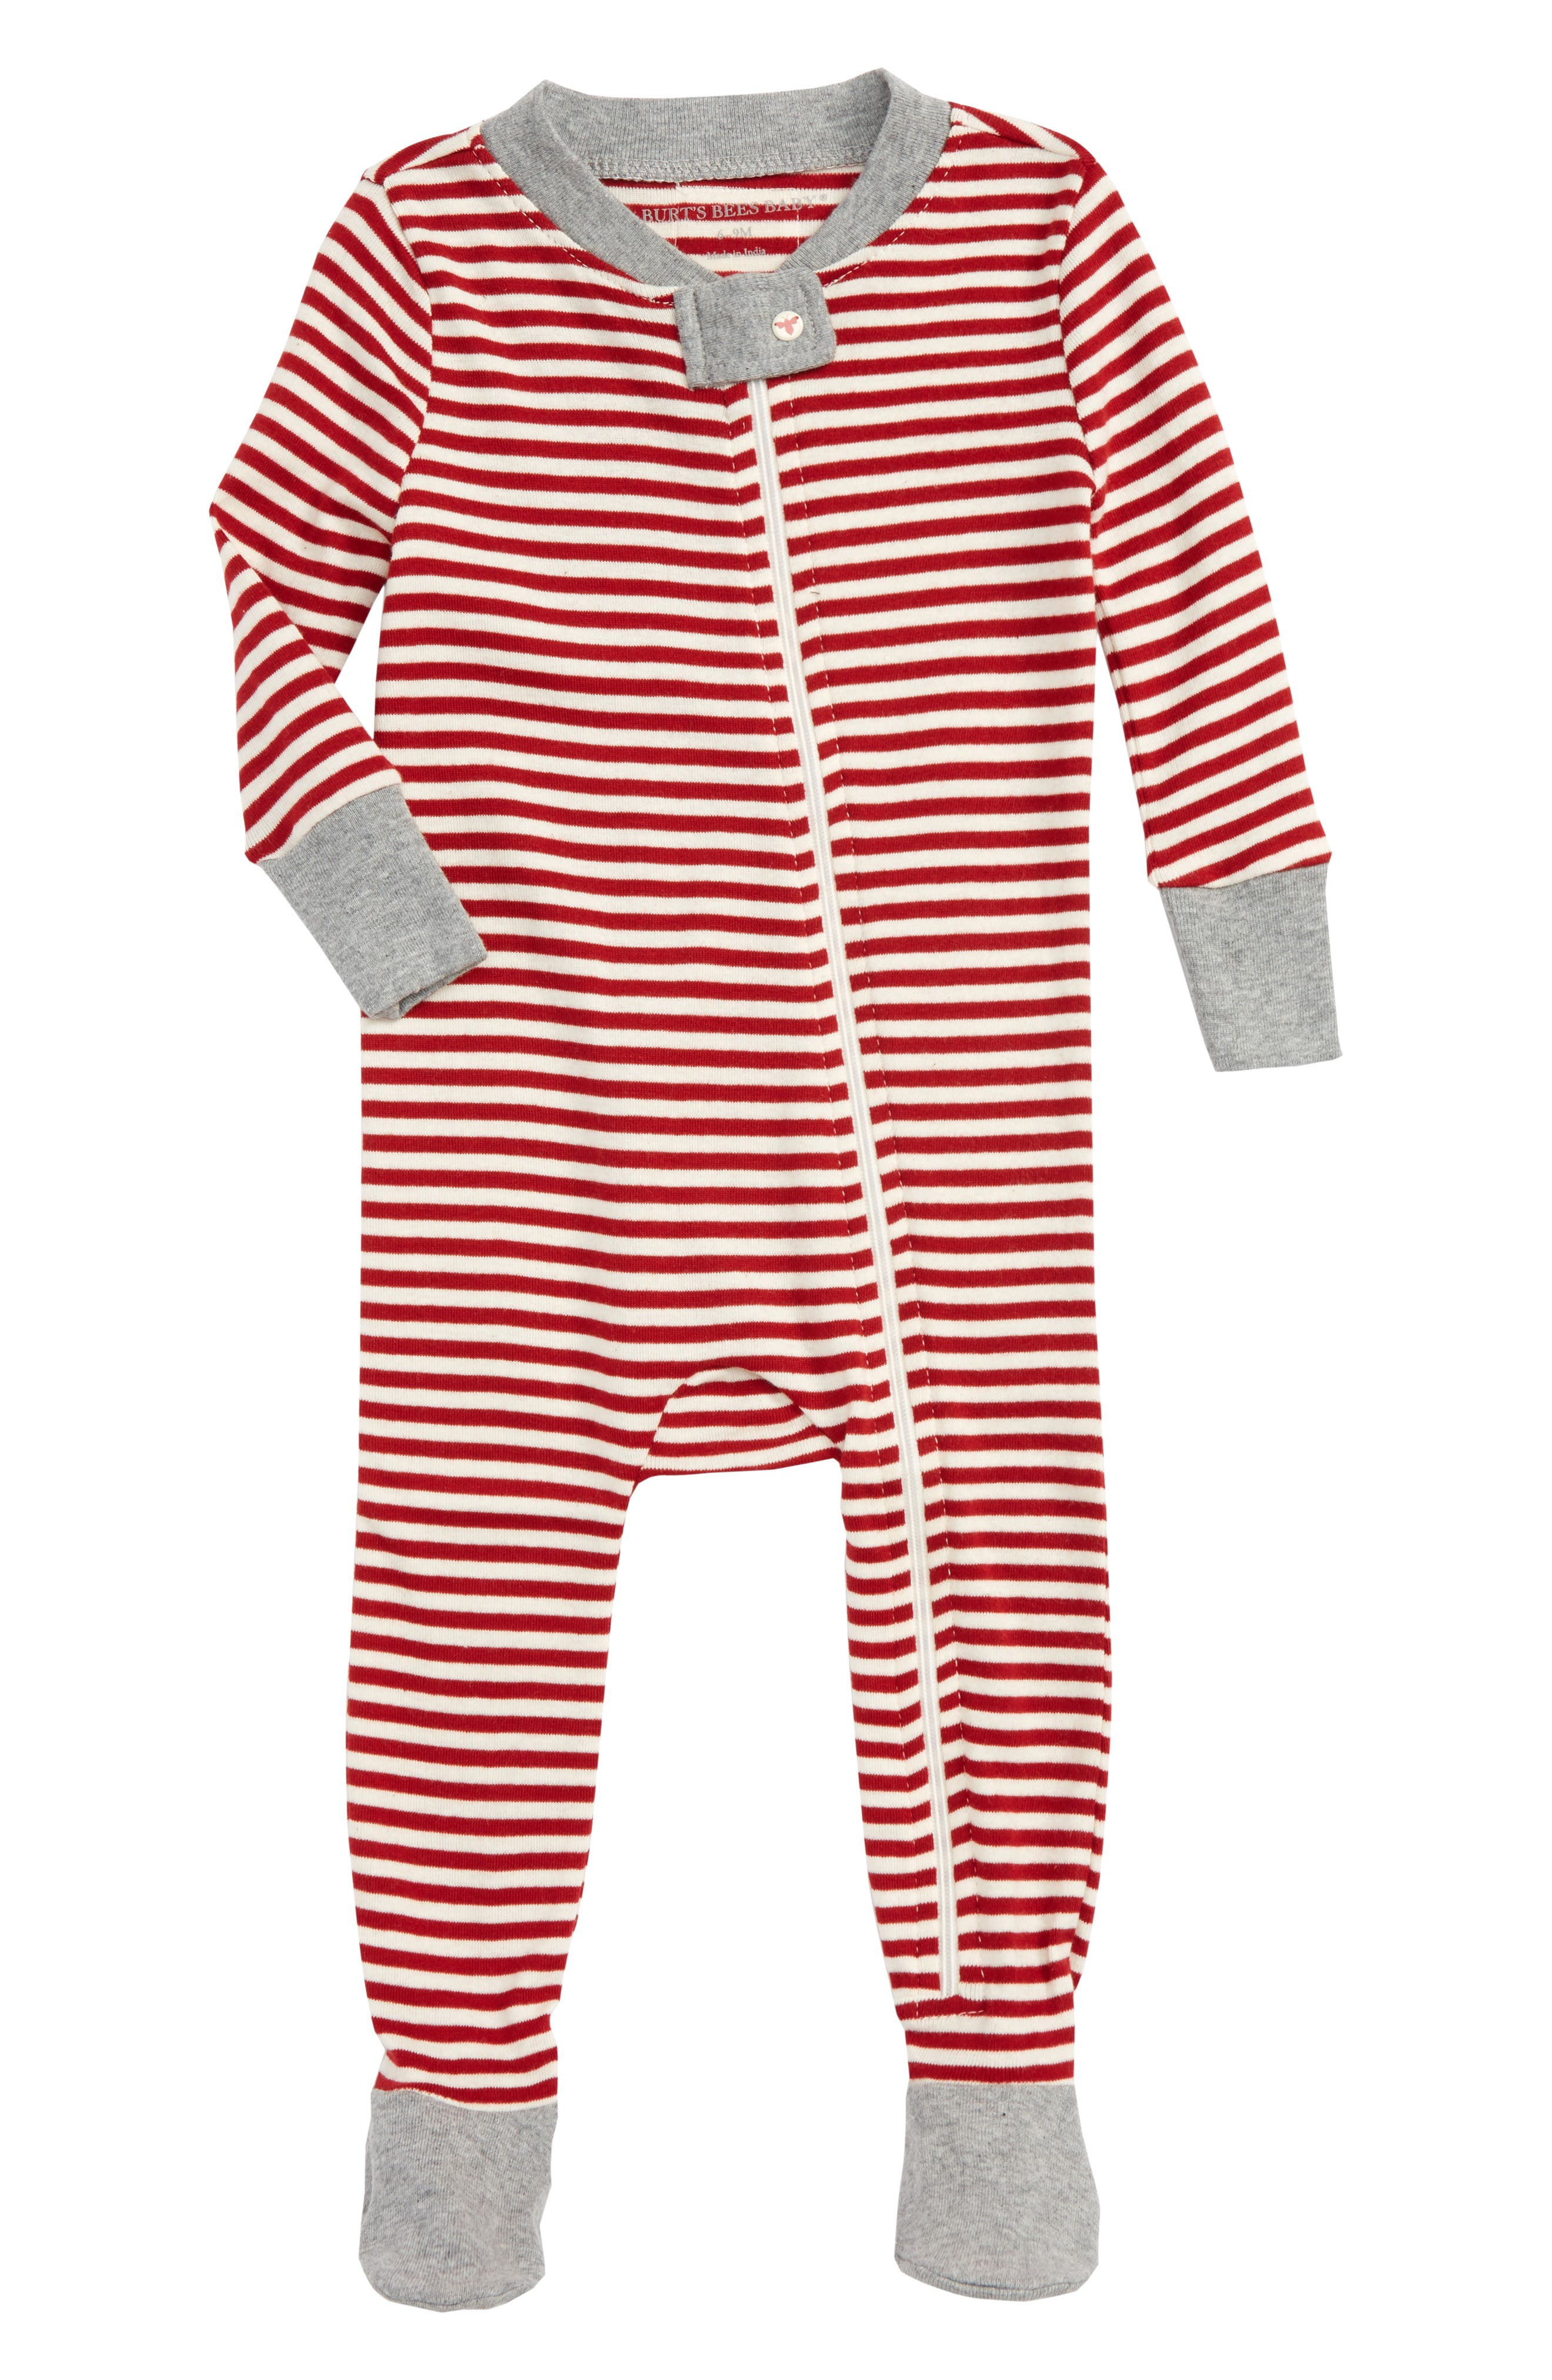 Fitted One-Piece Footie Pajamas,                             Main thumbnail 1, color,                             620